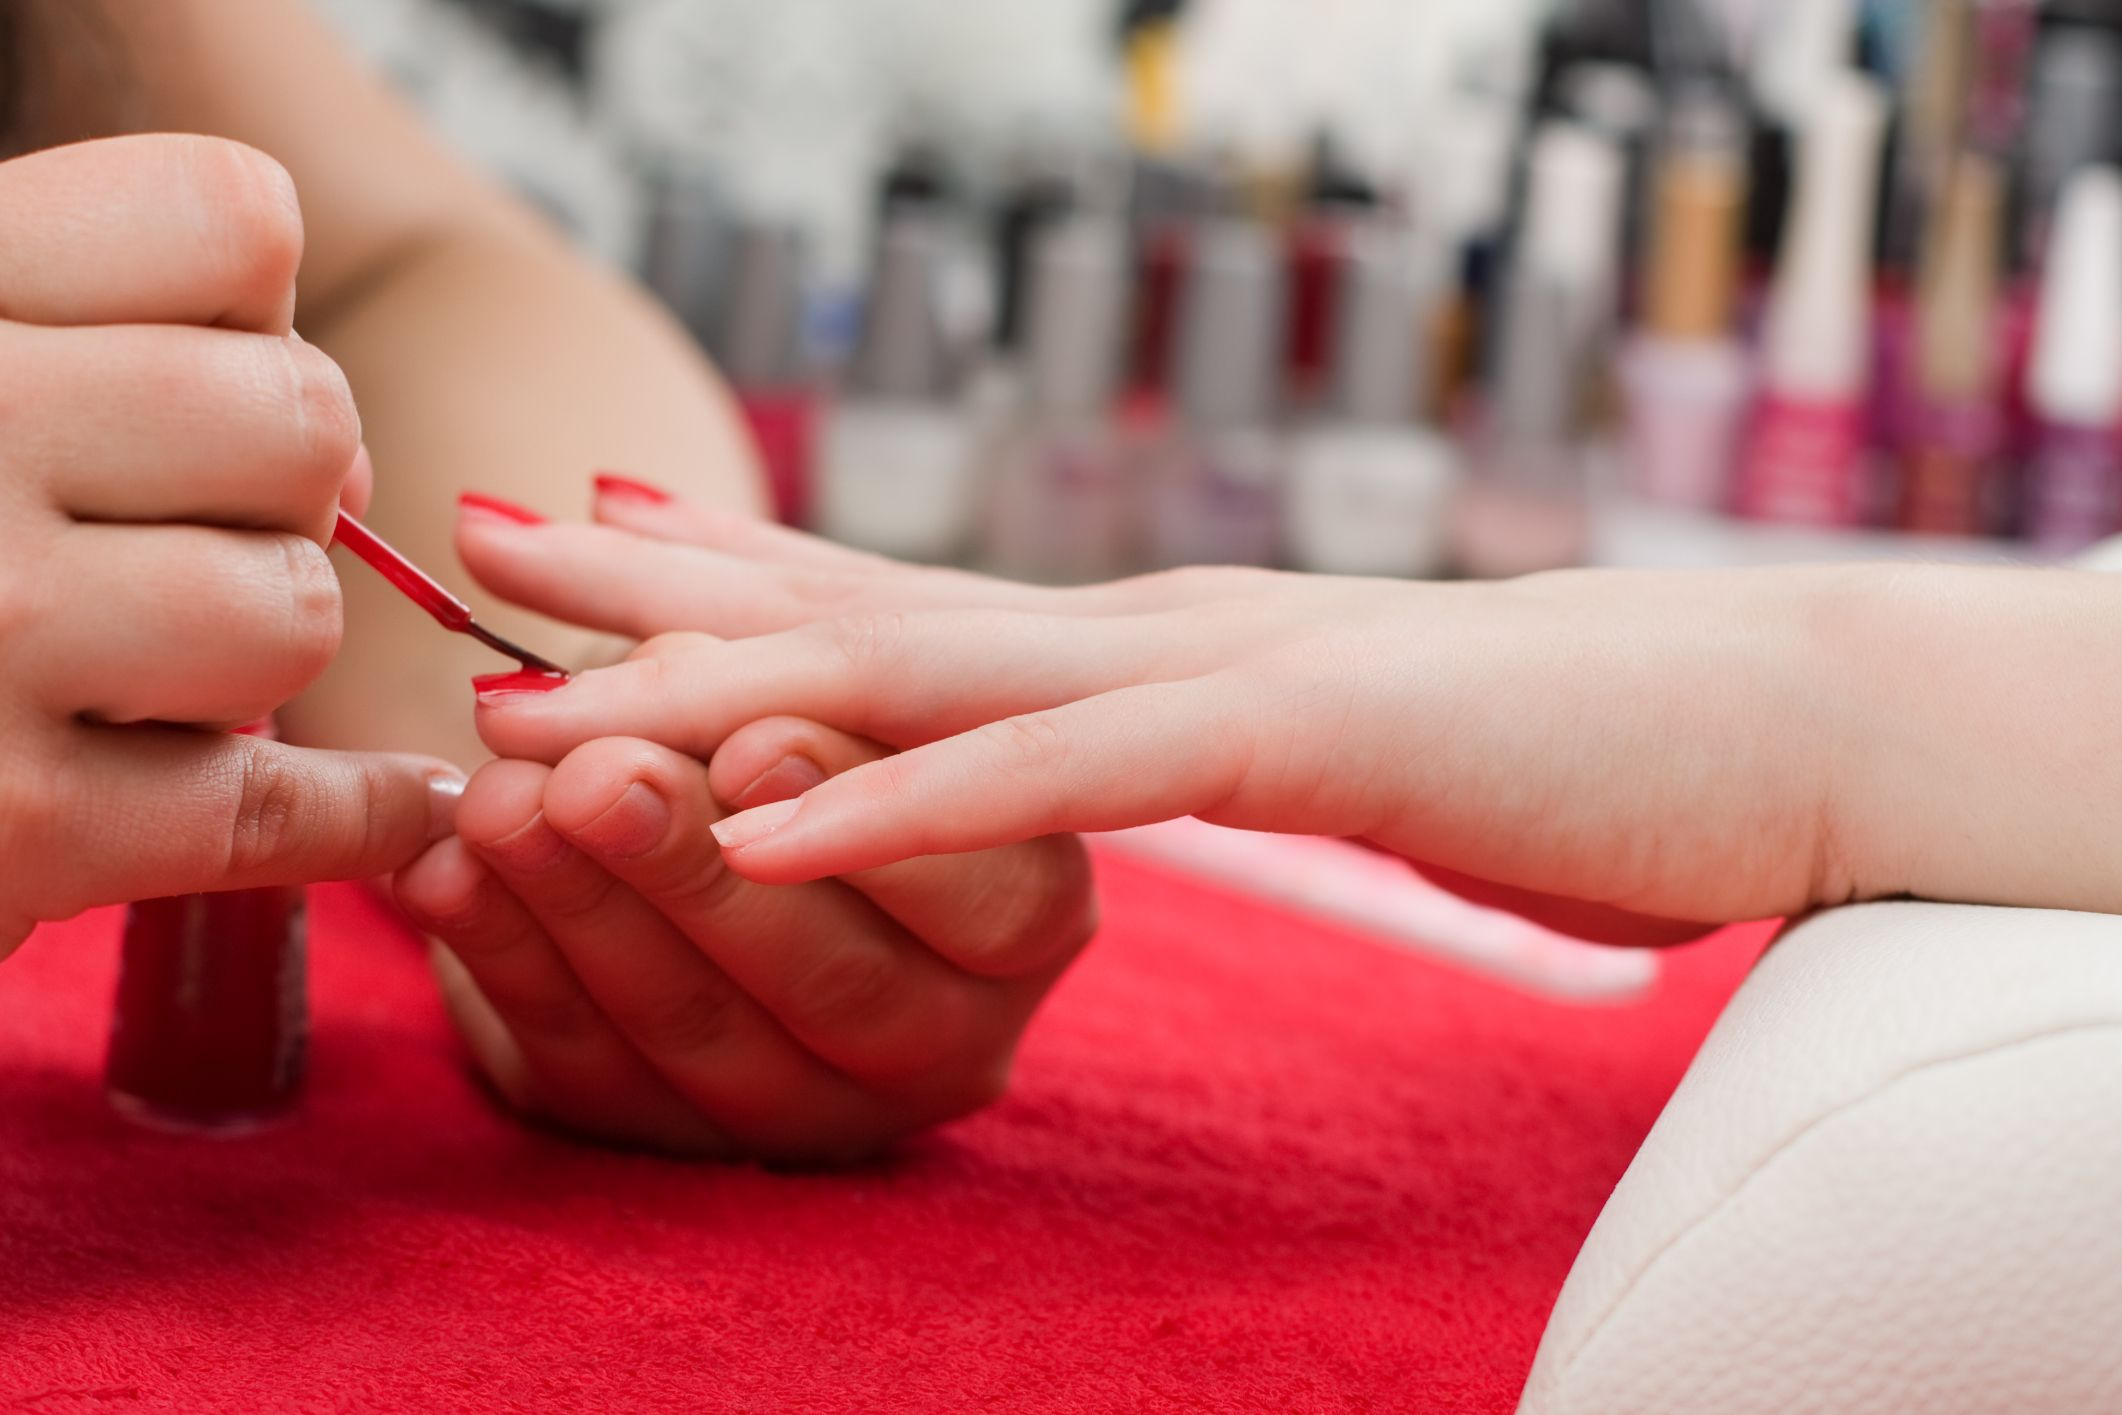 Nail Salon Unsafe Nail Salons 5 Warning Signs Your Nail Salon Is Unsafe